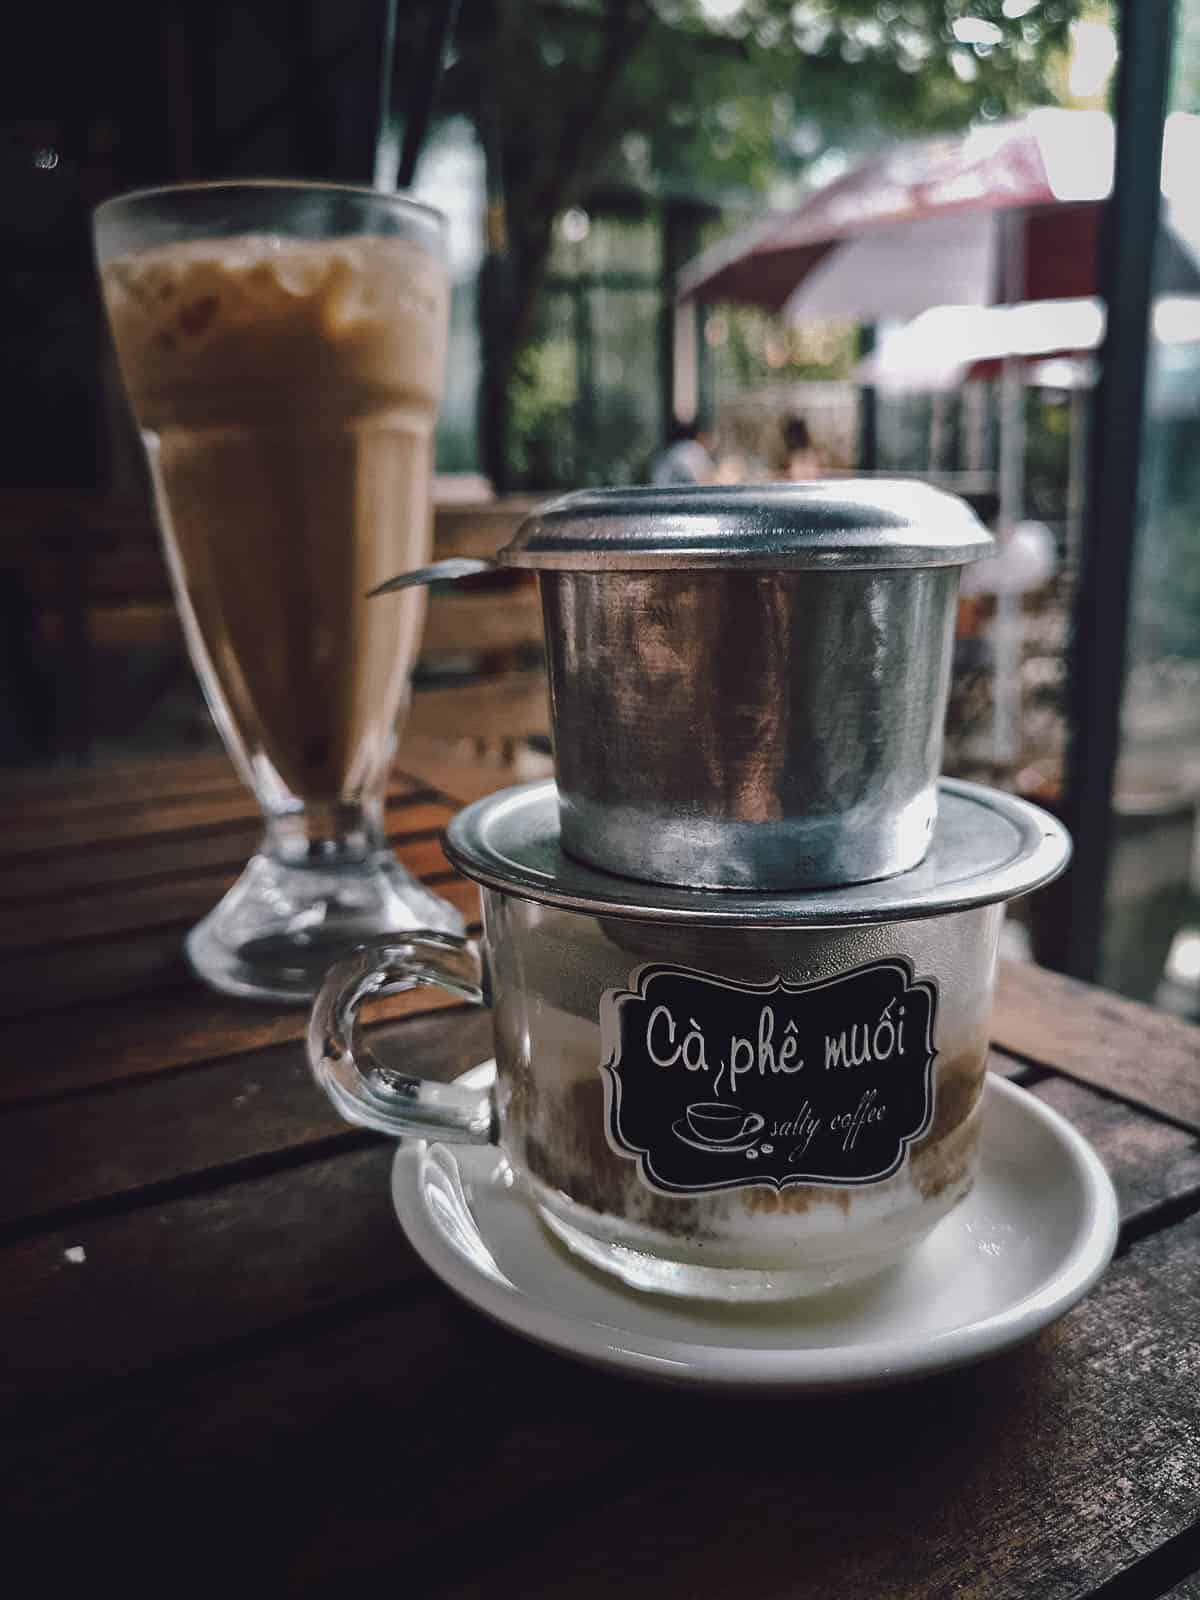 Salt coffee at Ca Phe Muoi in Hue, Vietnam